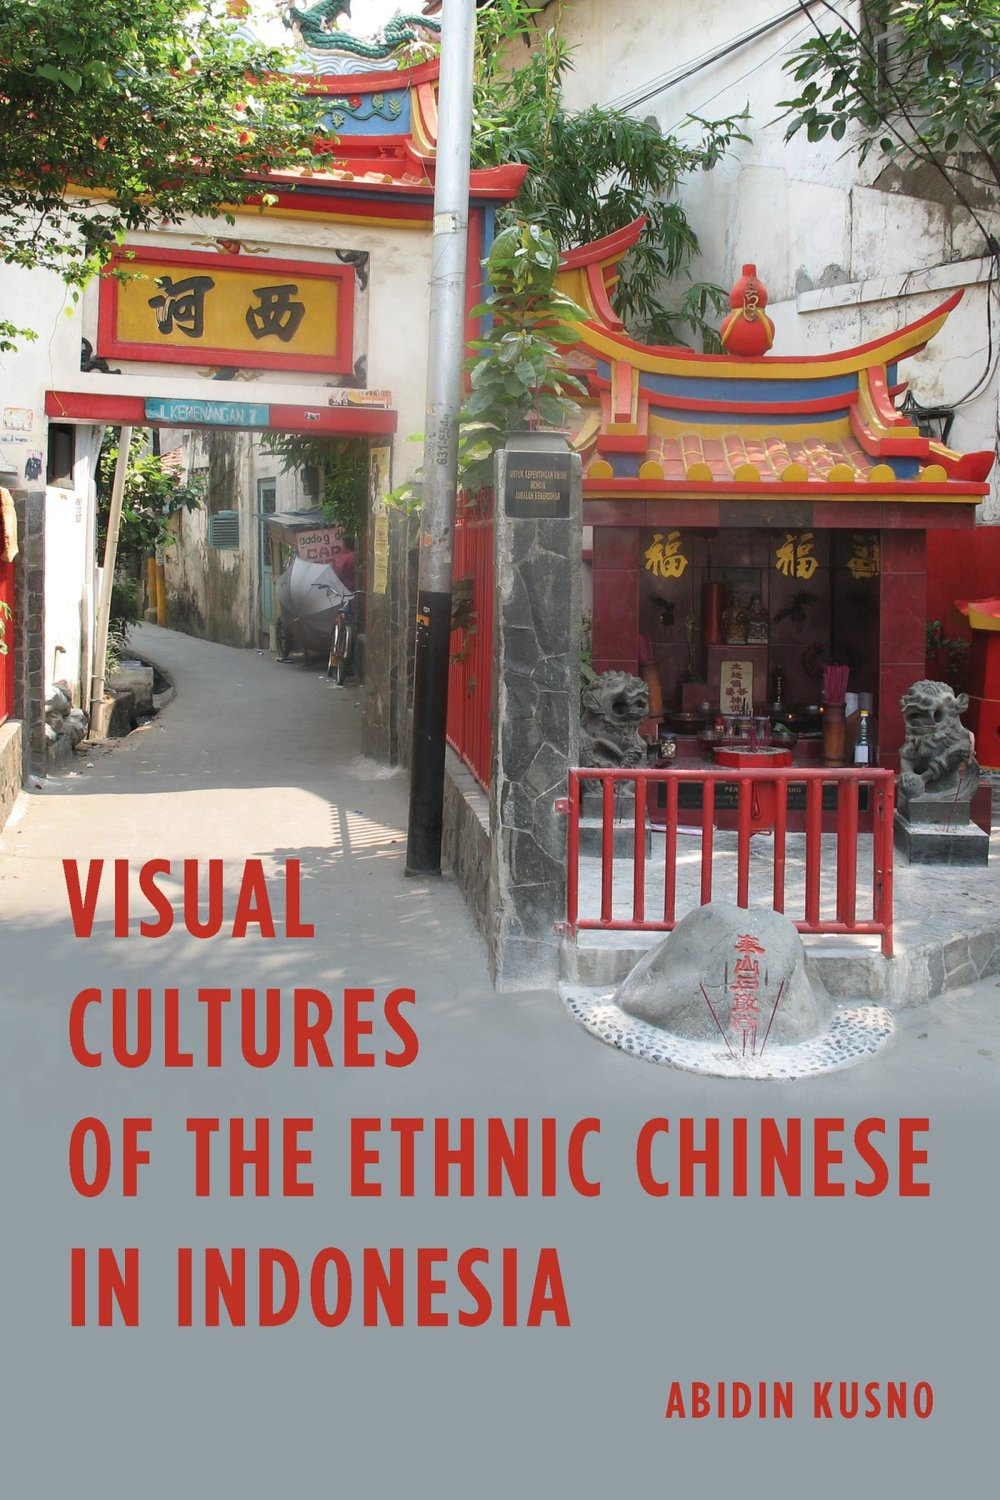 Visual Cultures of the Ethnic Chinese in Indonesia  (Image   ©   Abidin Kusno)